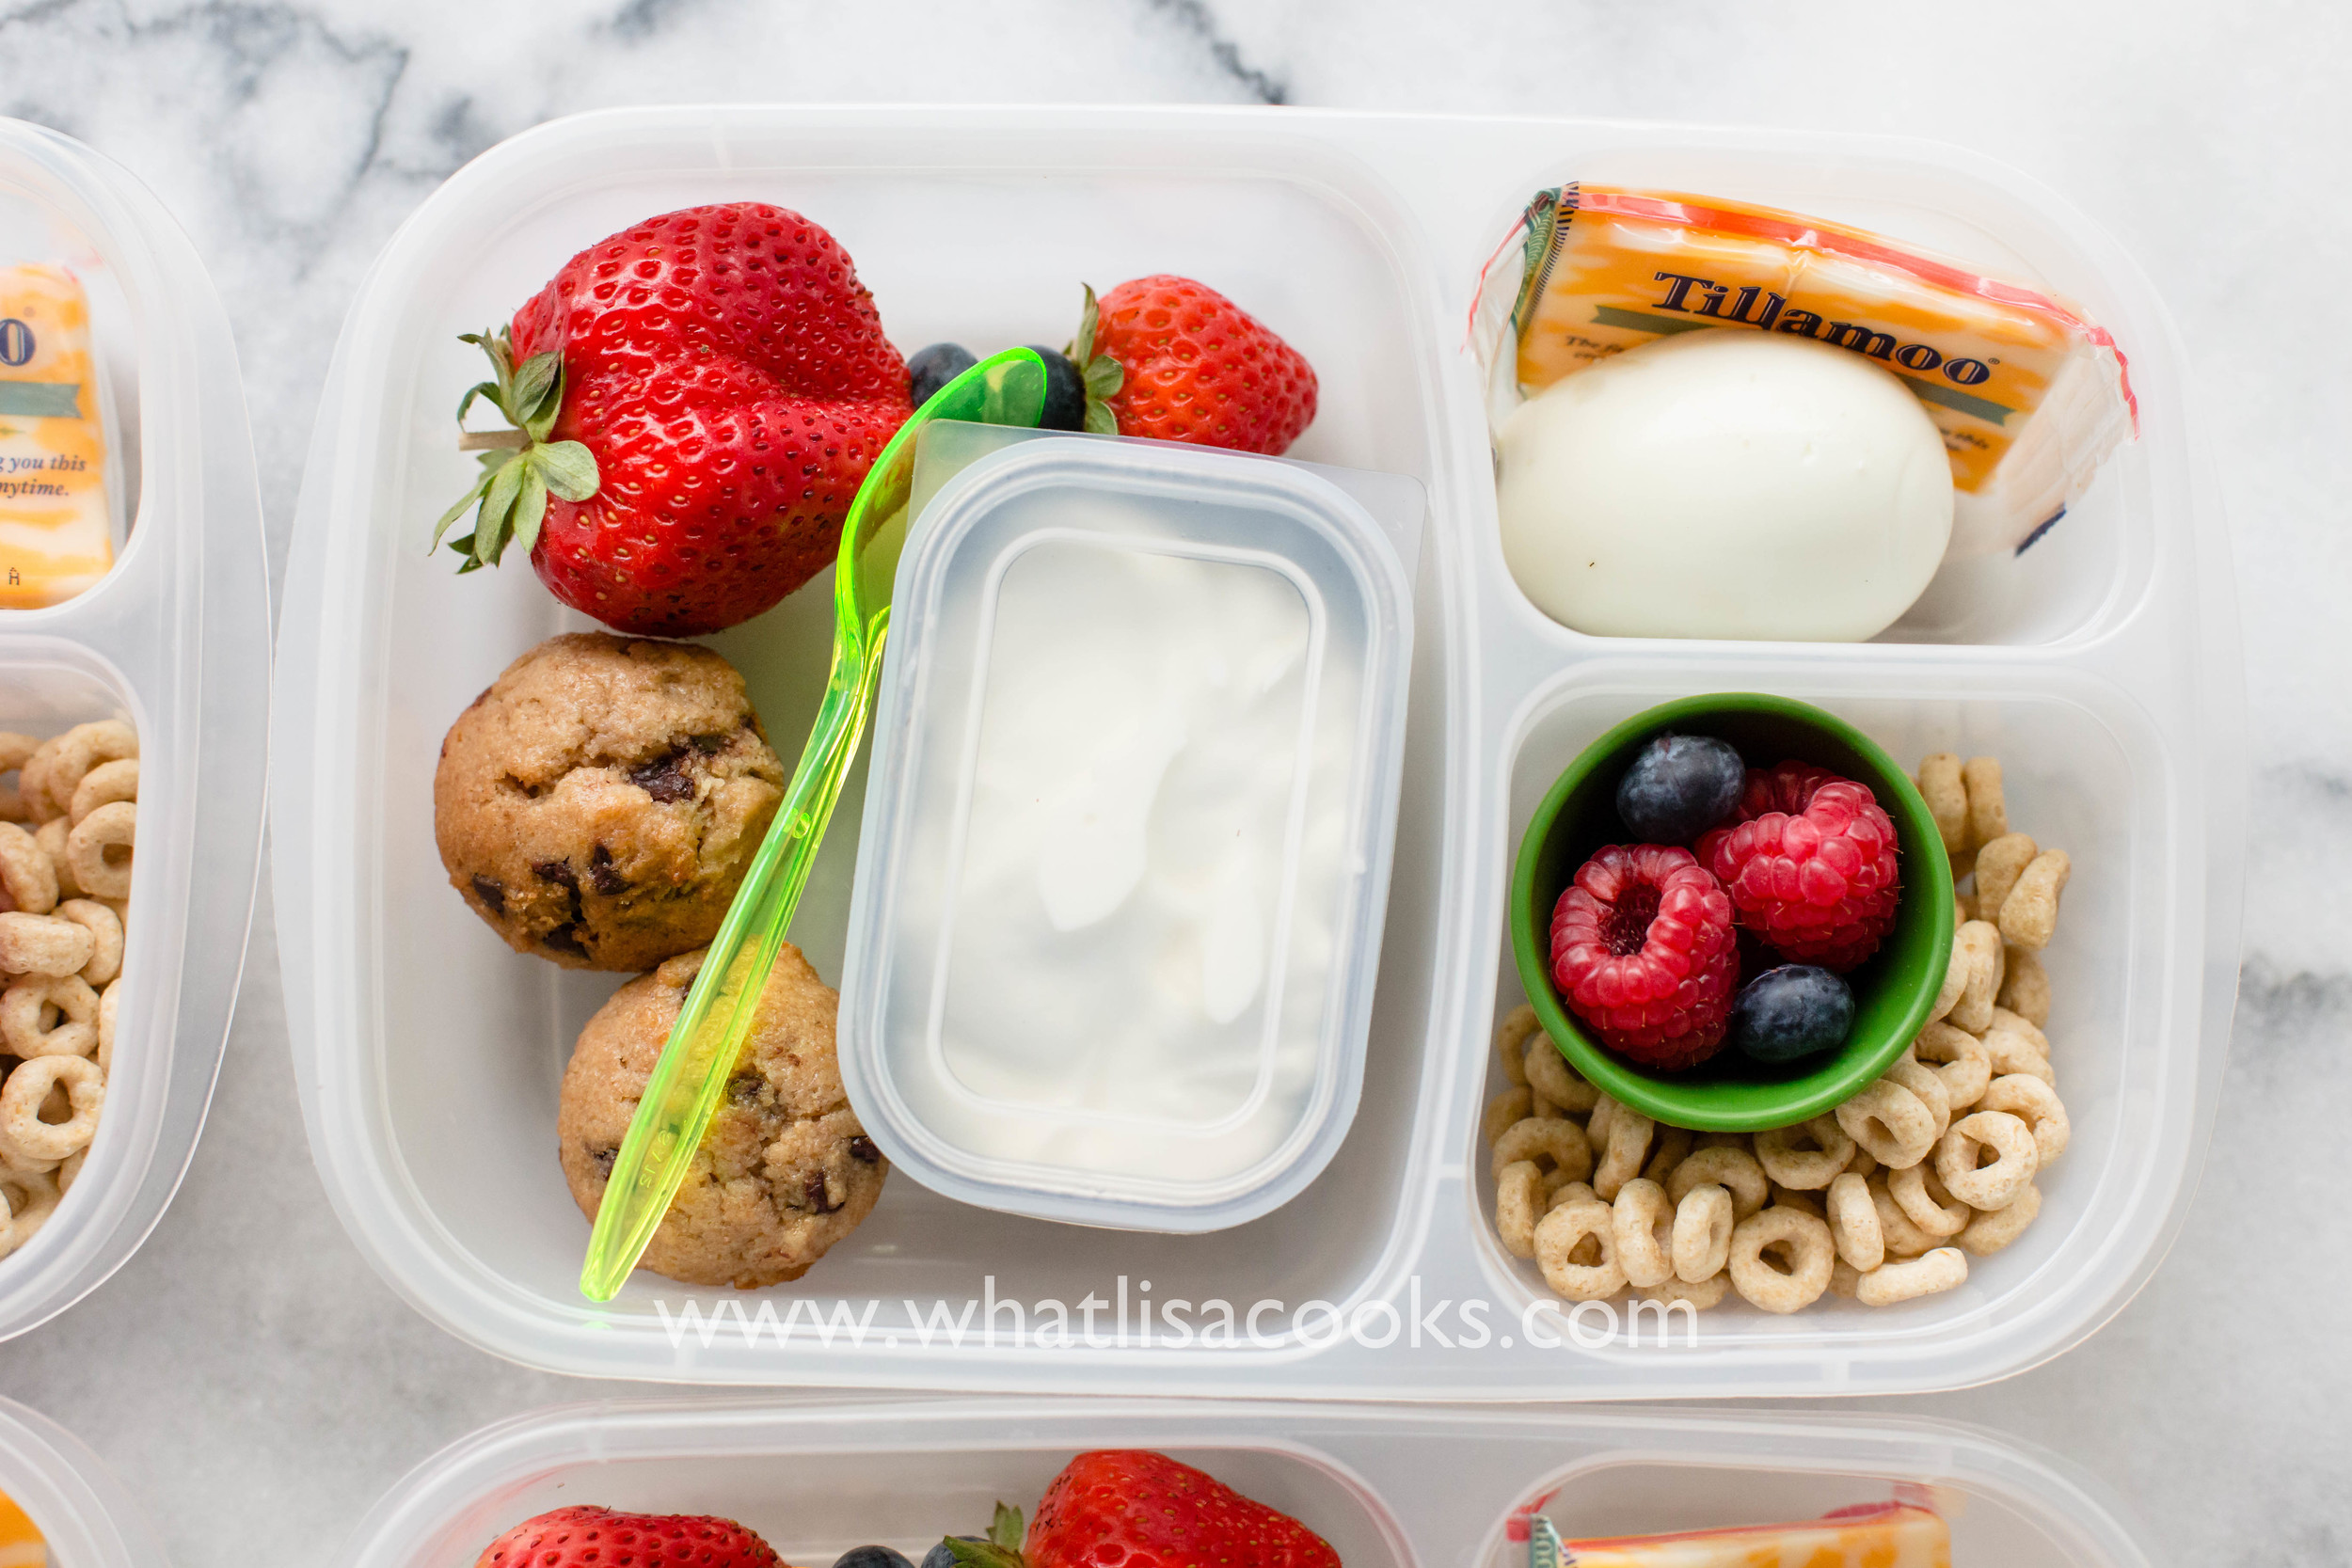 perfect school lunch idea from whatlisacooks.com - mini chocolate chip muffins and fruit, with an easy muffin recipe.